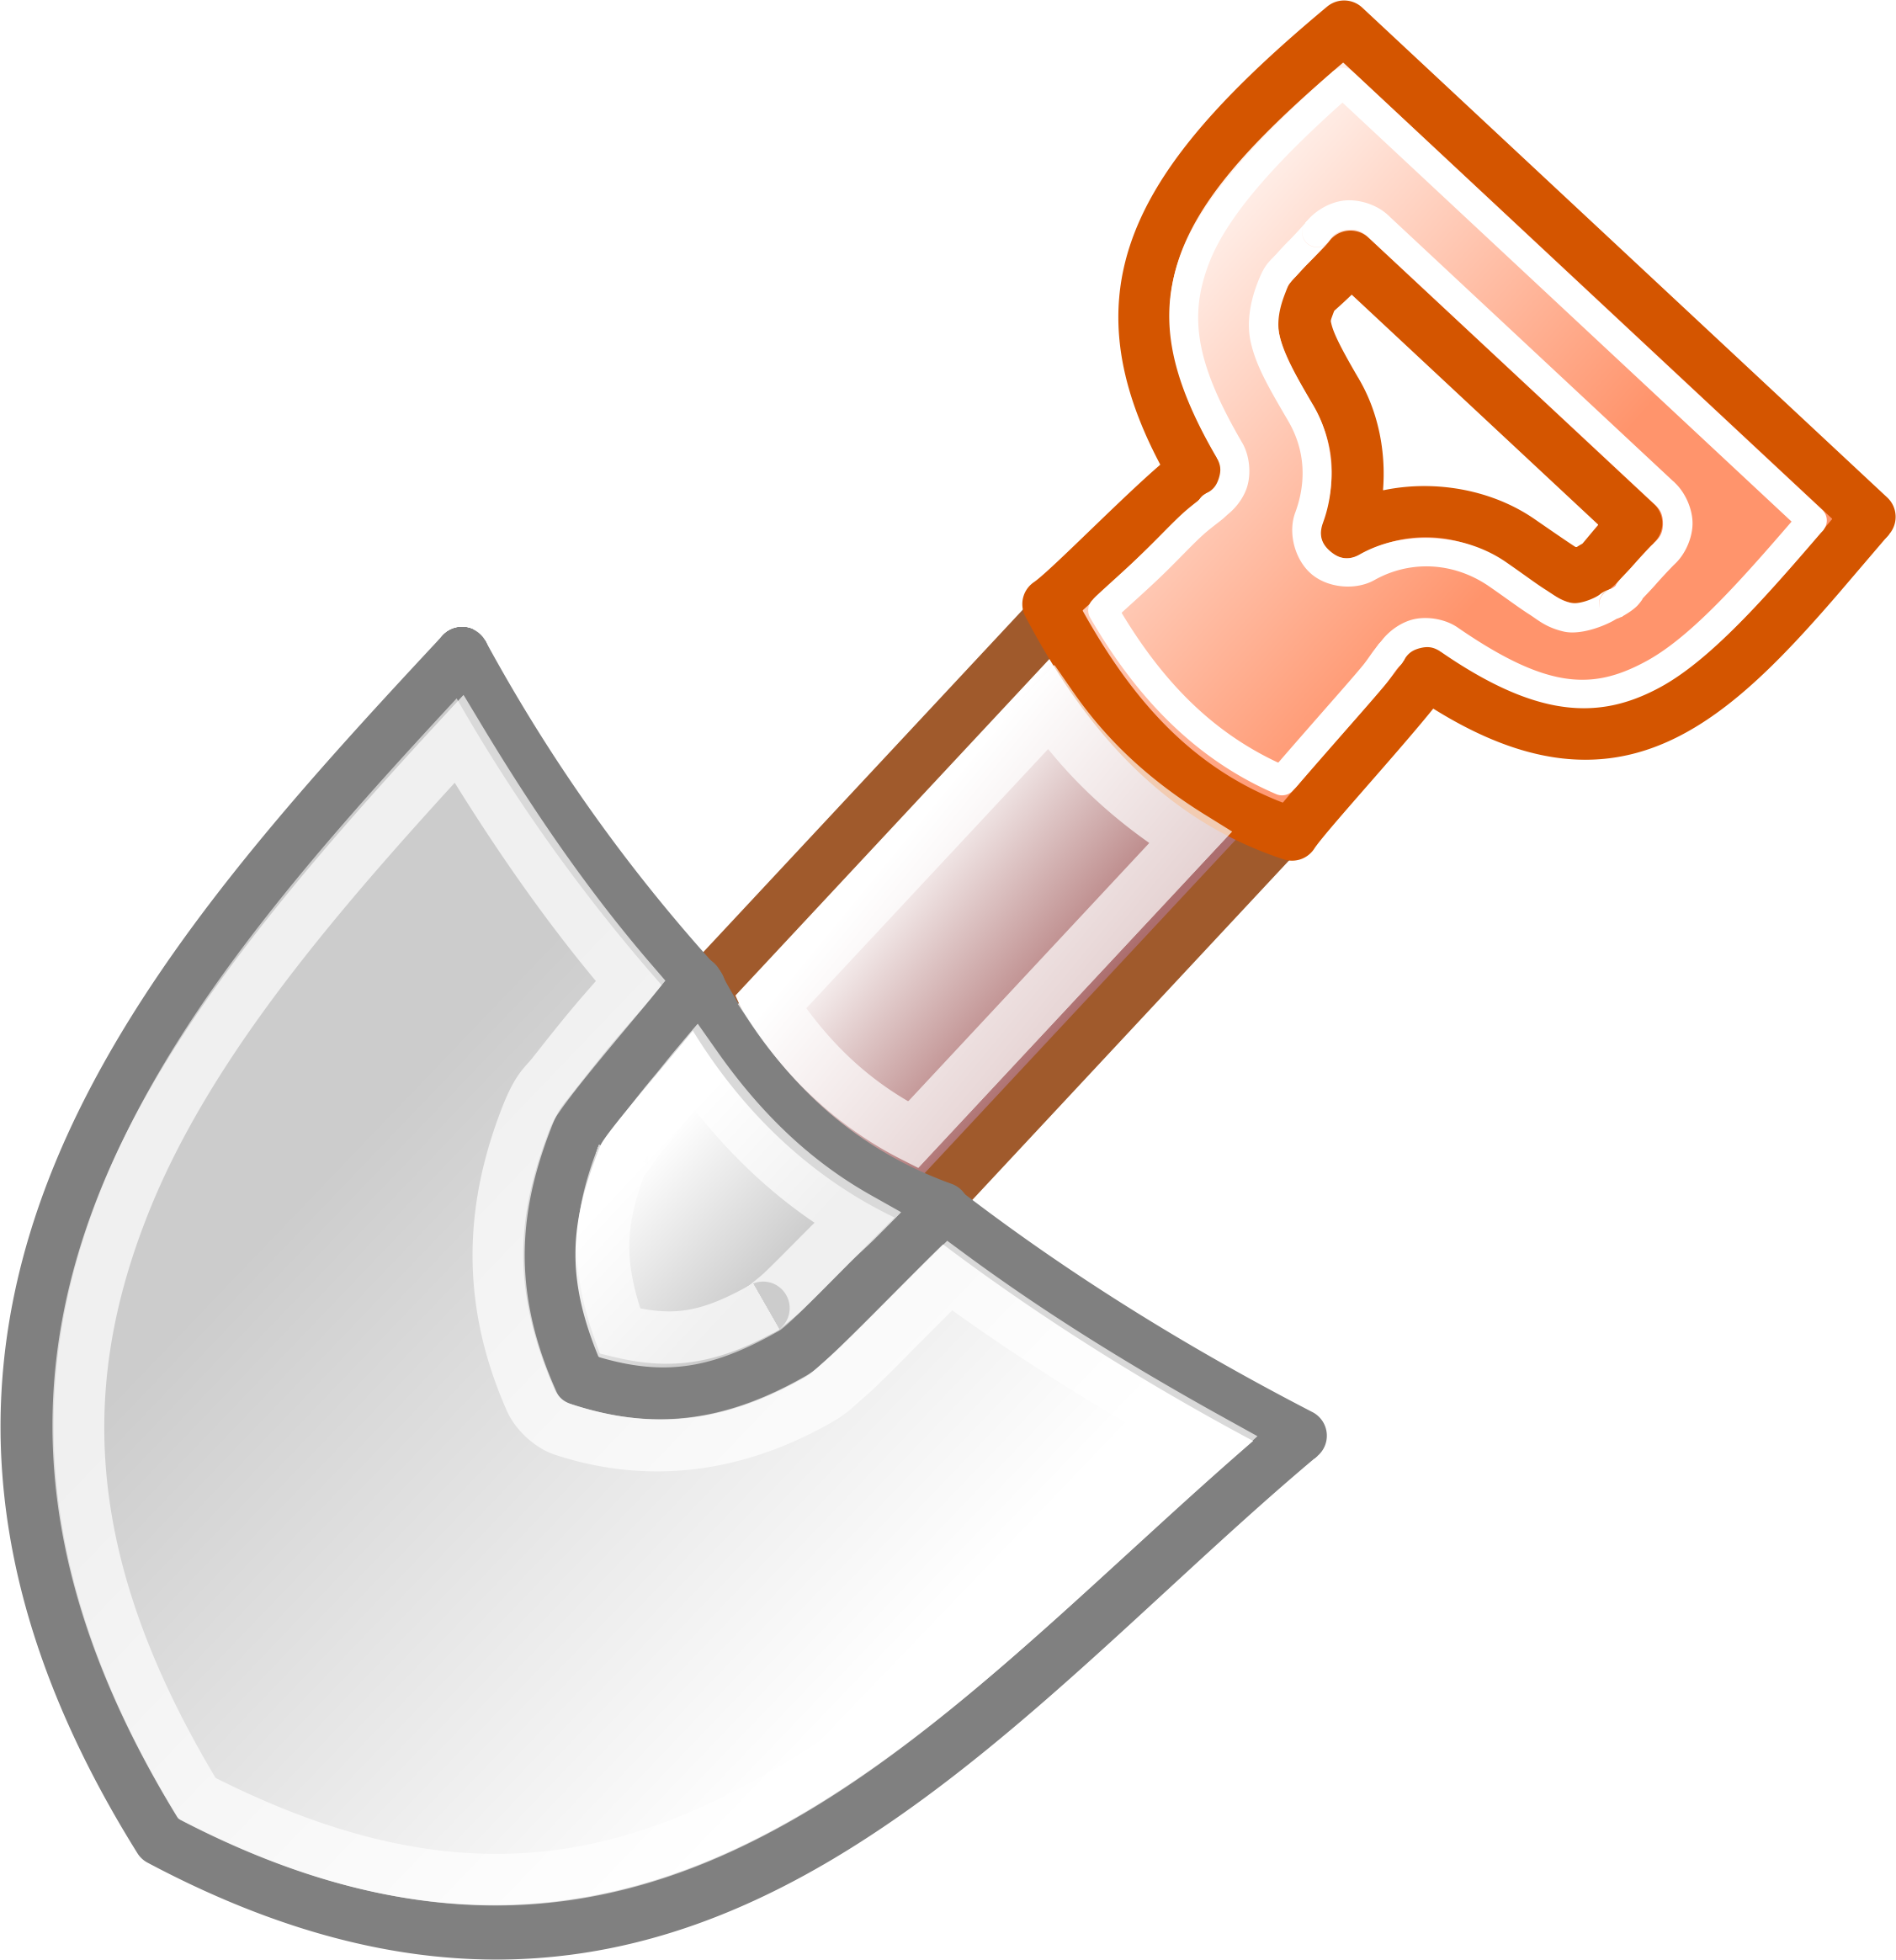 Square clipart shovel. Delve group icon